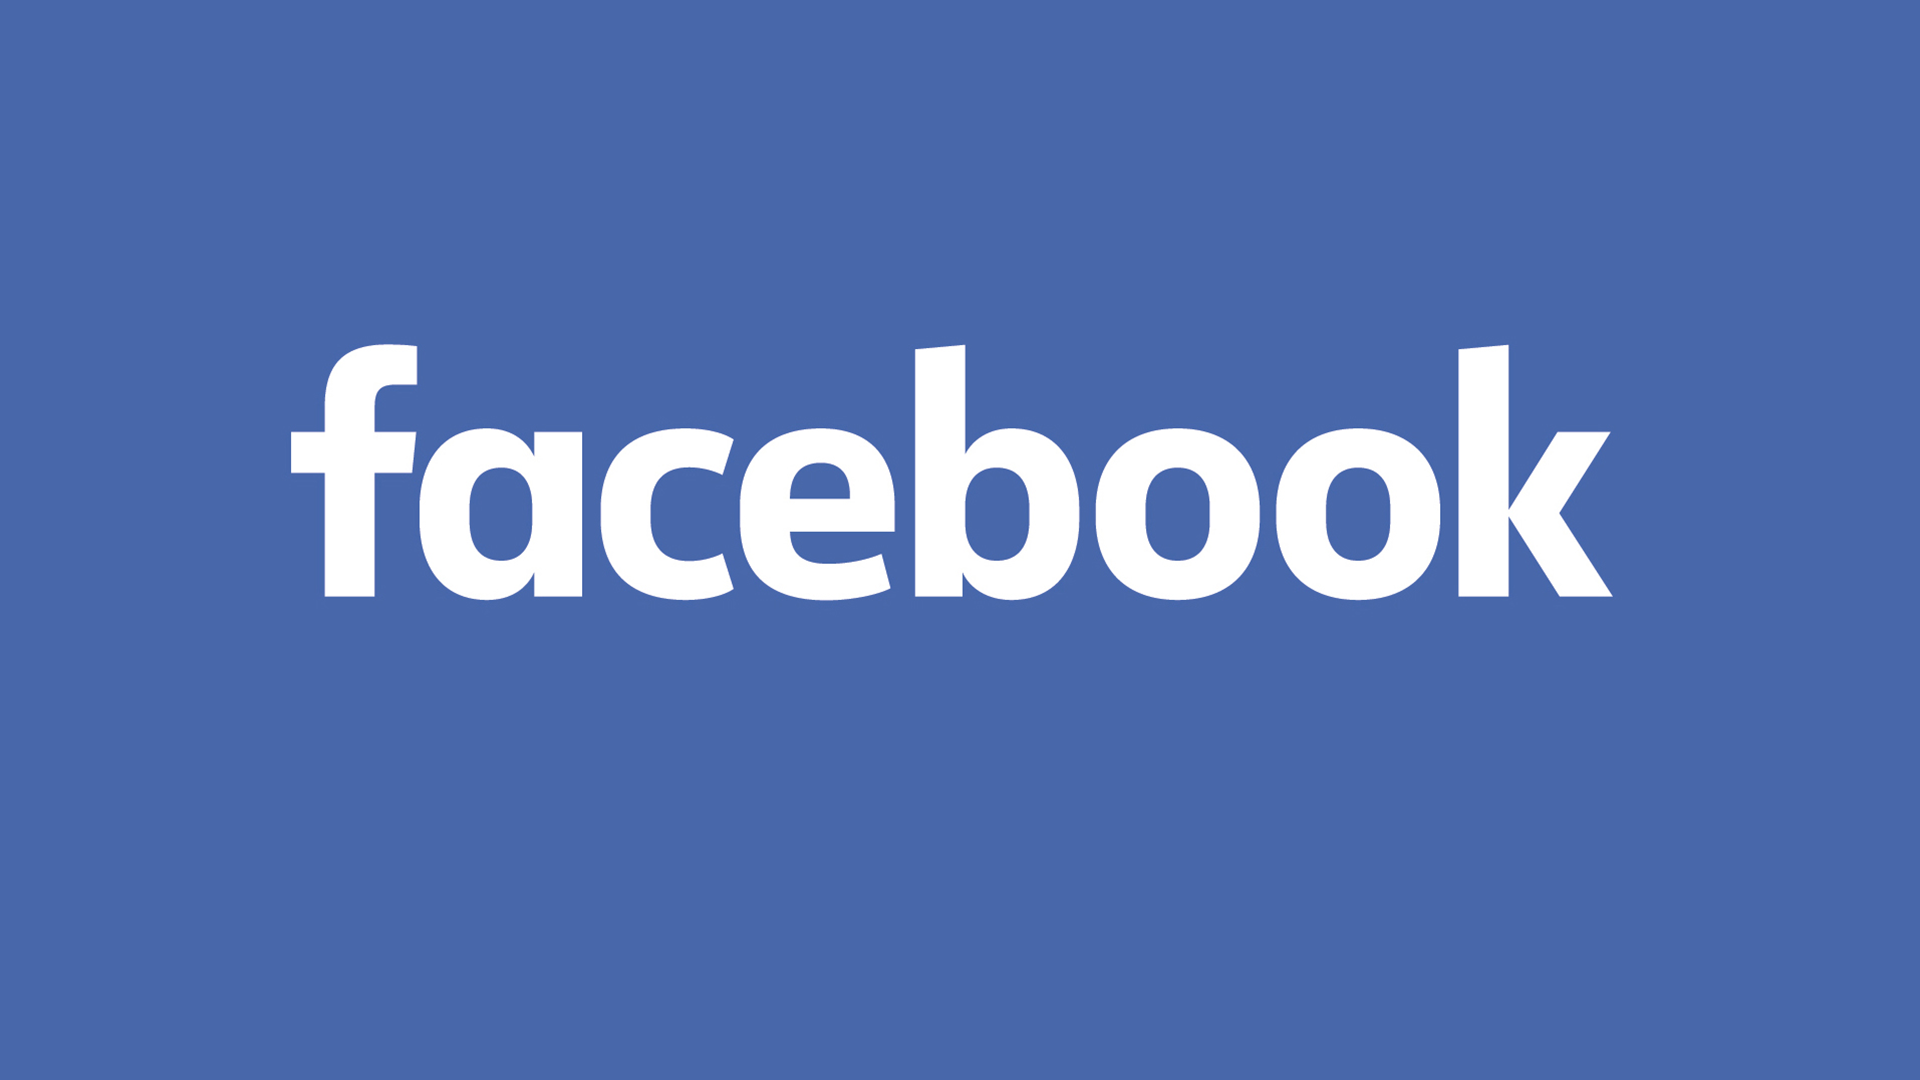 Facebook looks into cryptocurrency based payment system